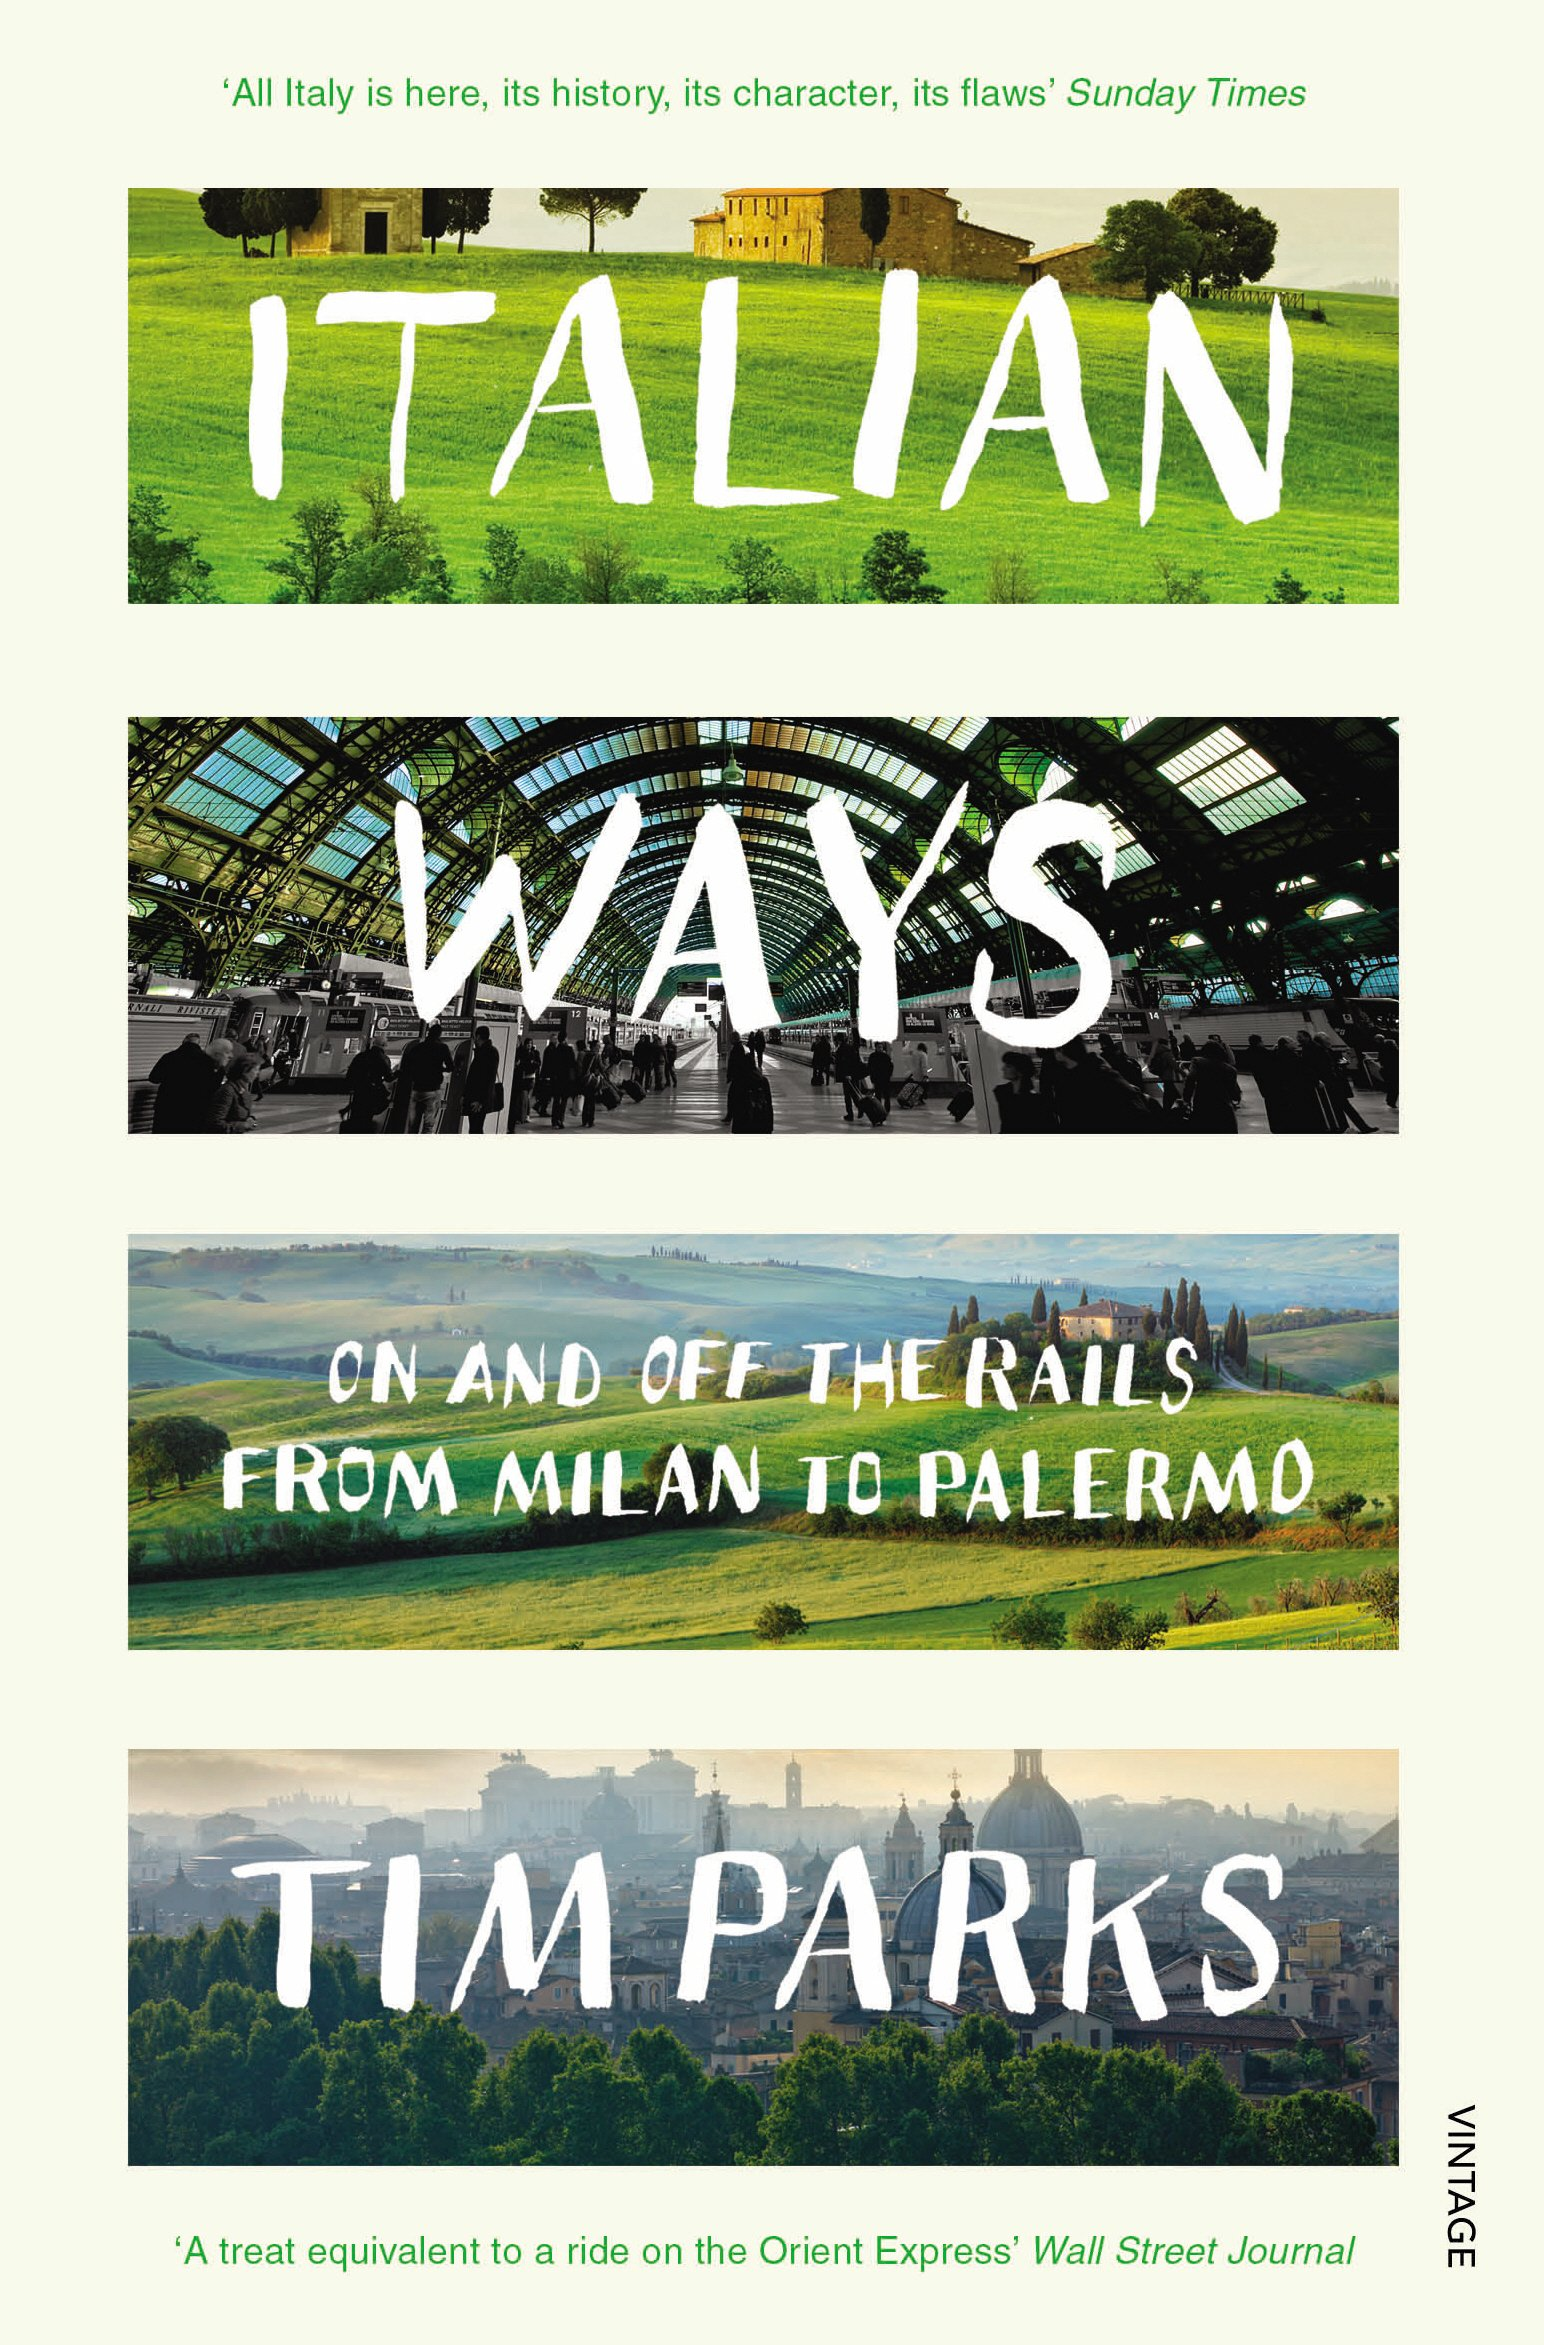 italian-ways-on-and-off-the-rails-from-milan-to-palermo